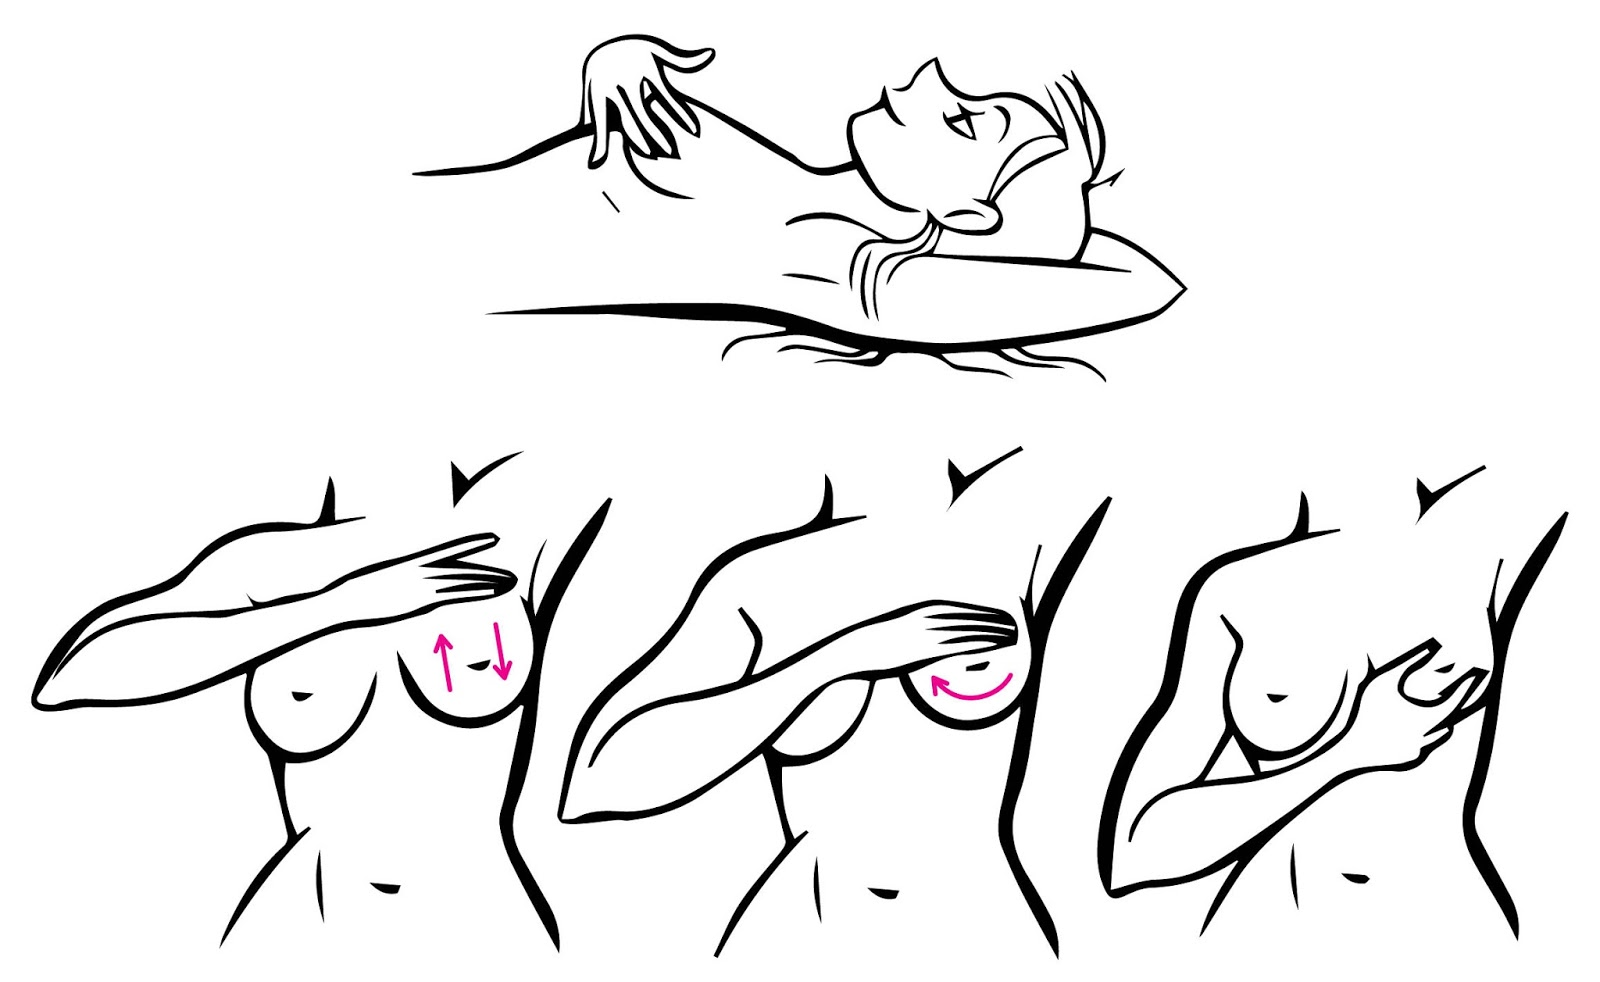 Breast self exam steps are mistaken